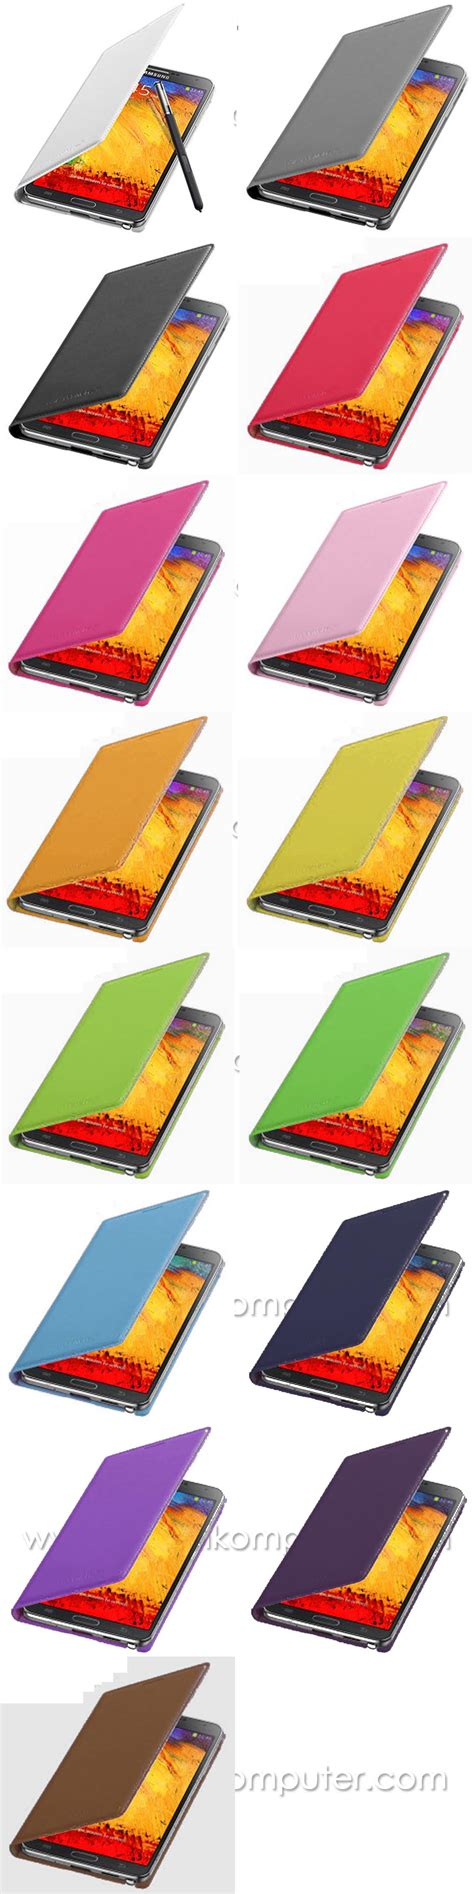 Samsung Note 3 N9000 Flip Cover Casing Dompet Sarung Bumper Flip areahp flip cover for samsung galaxy note3 n9000